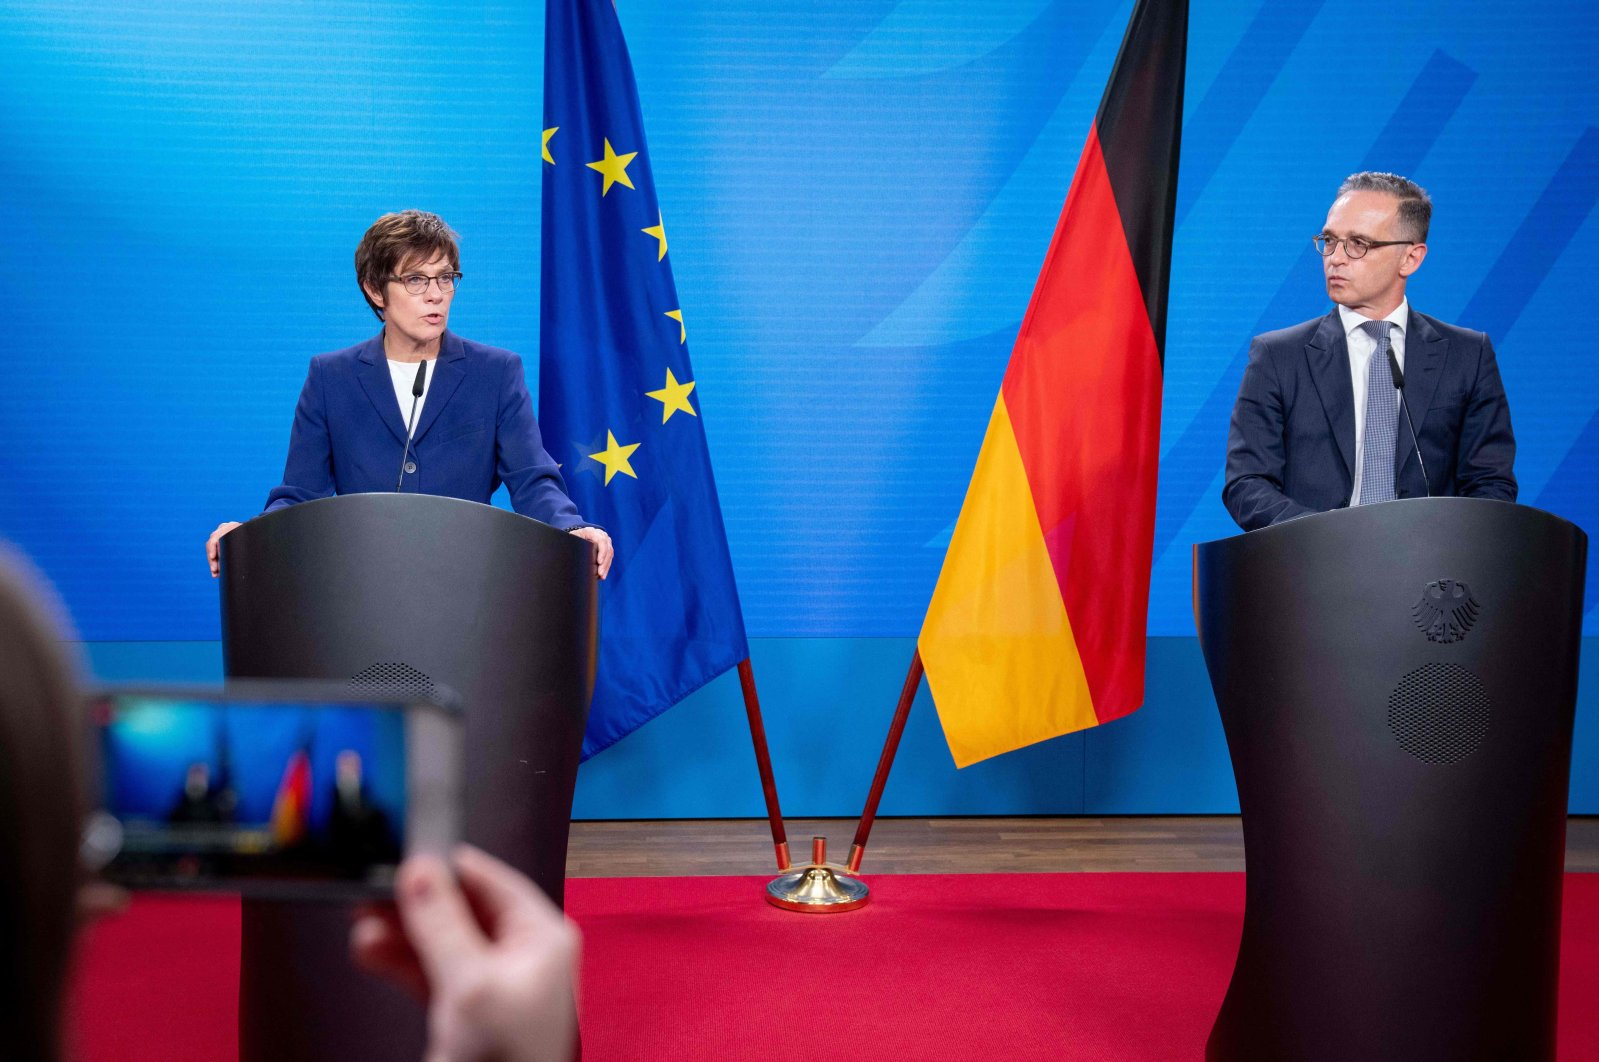 German Defense Minister Annegret Kramp-Karrenbauer (L) and German Foreign Minister Heiko Maas attend a joint press conference on evacuation measures at the airport in Kabul following the Taliban takeover of Afghanistan, in Berlin, on August 17, 2021 at the Foreign Ministry in Berlin. (AFP Photo)